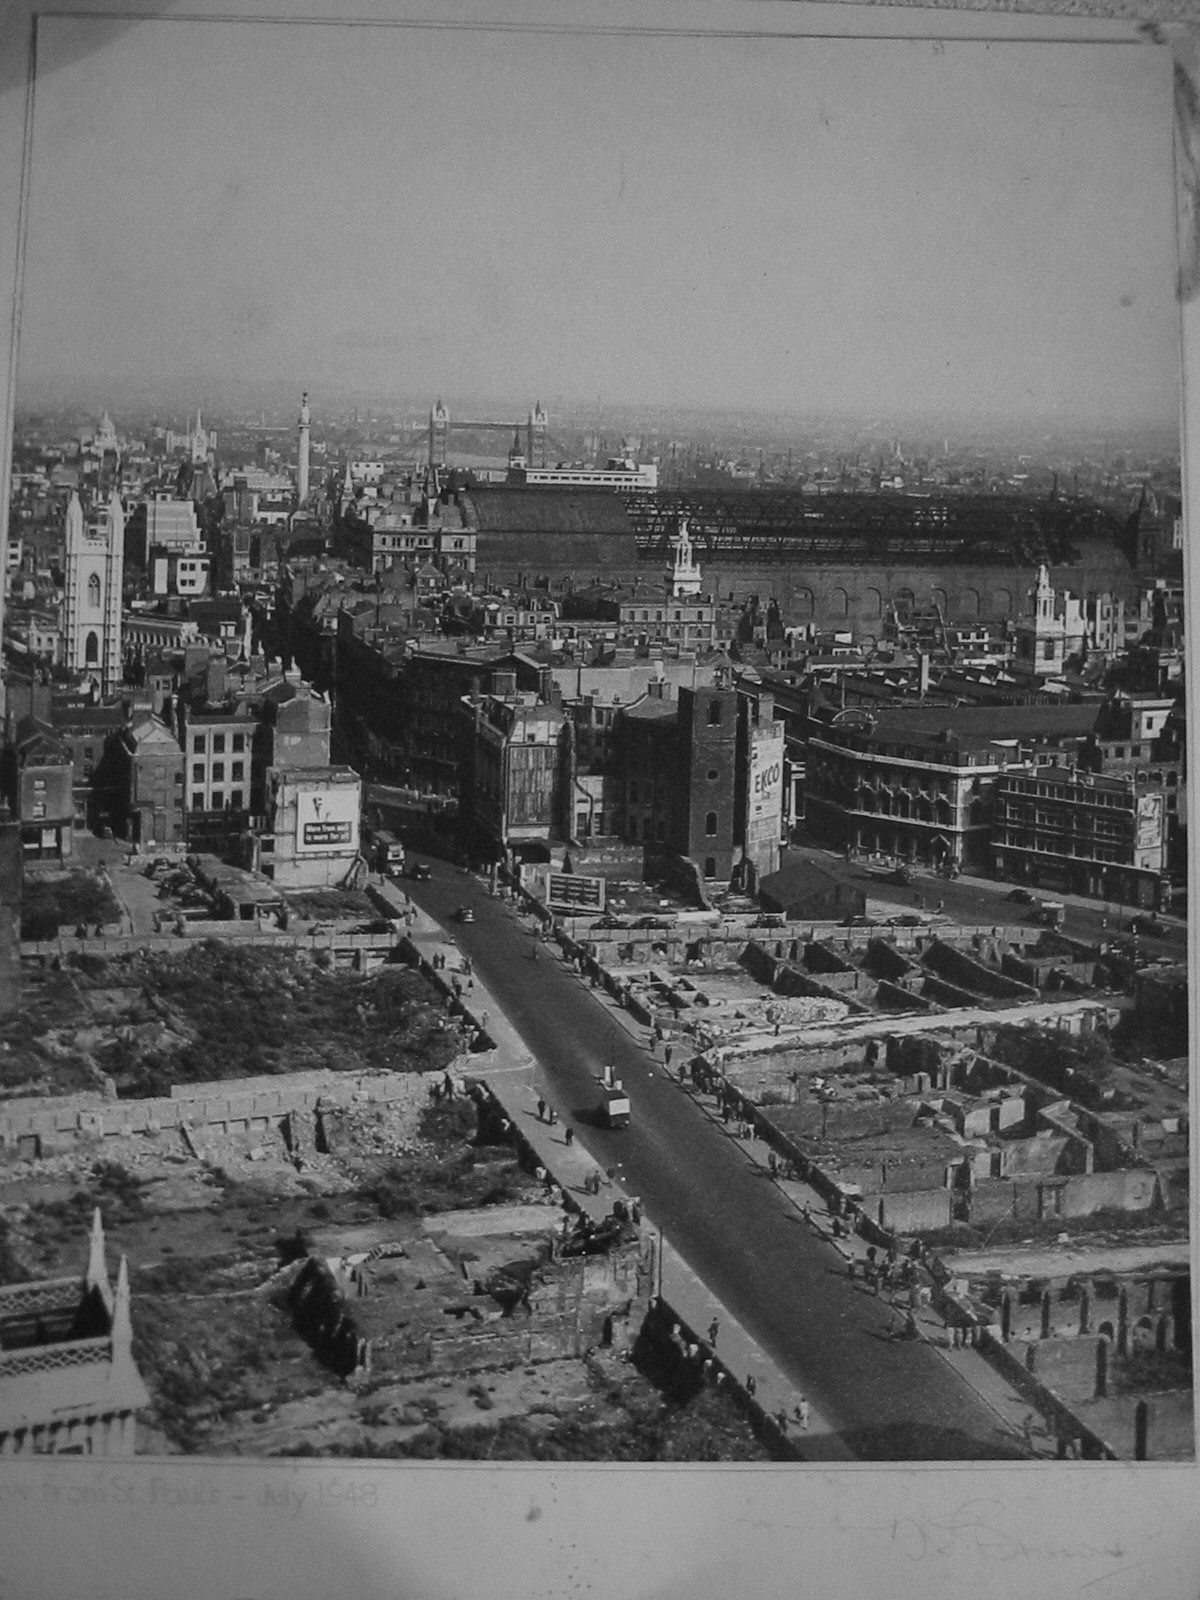 The City Of London July 1948 Taken From The Top Of St Paul S Looking East This Image Shows The Now Demolished Barrel Roof Wwii History London History Photo